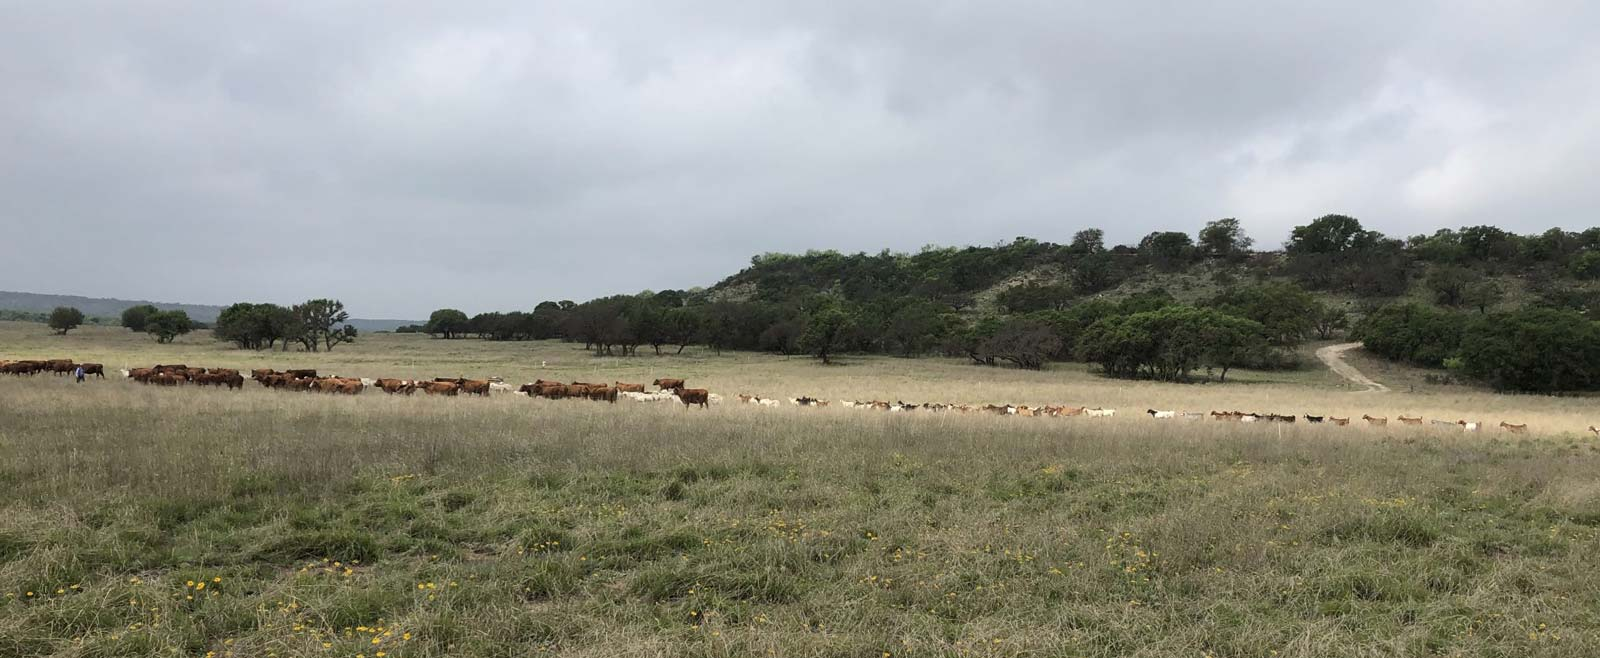 On the Move: Achieving Symbiosis in Cattle Ranching